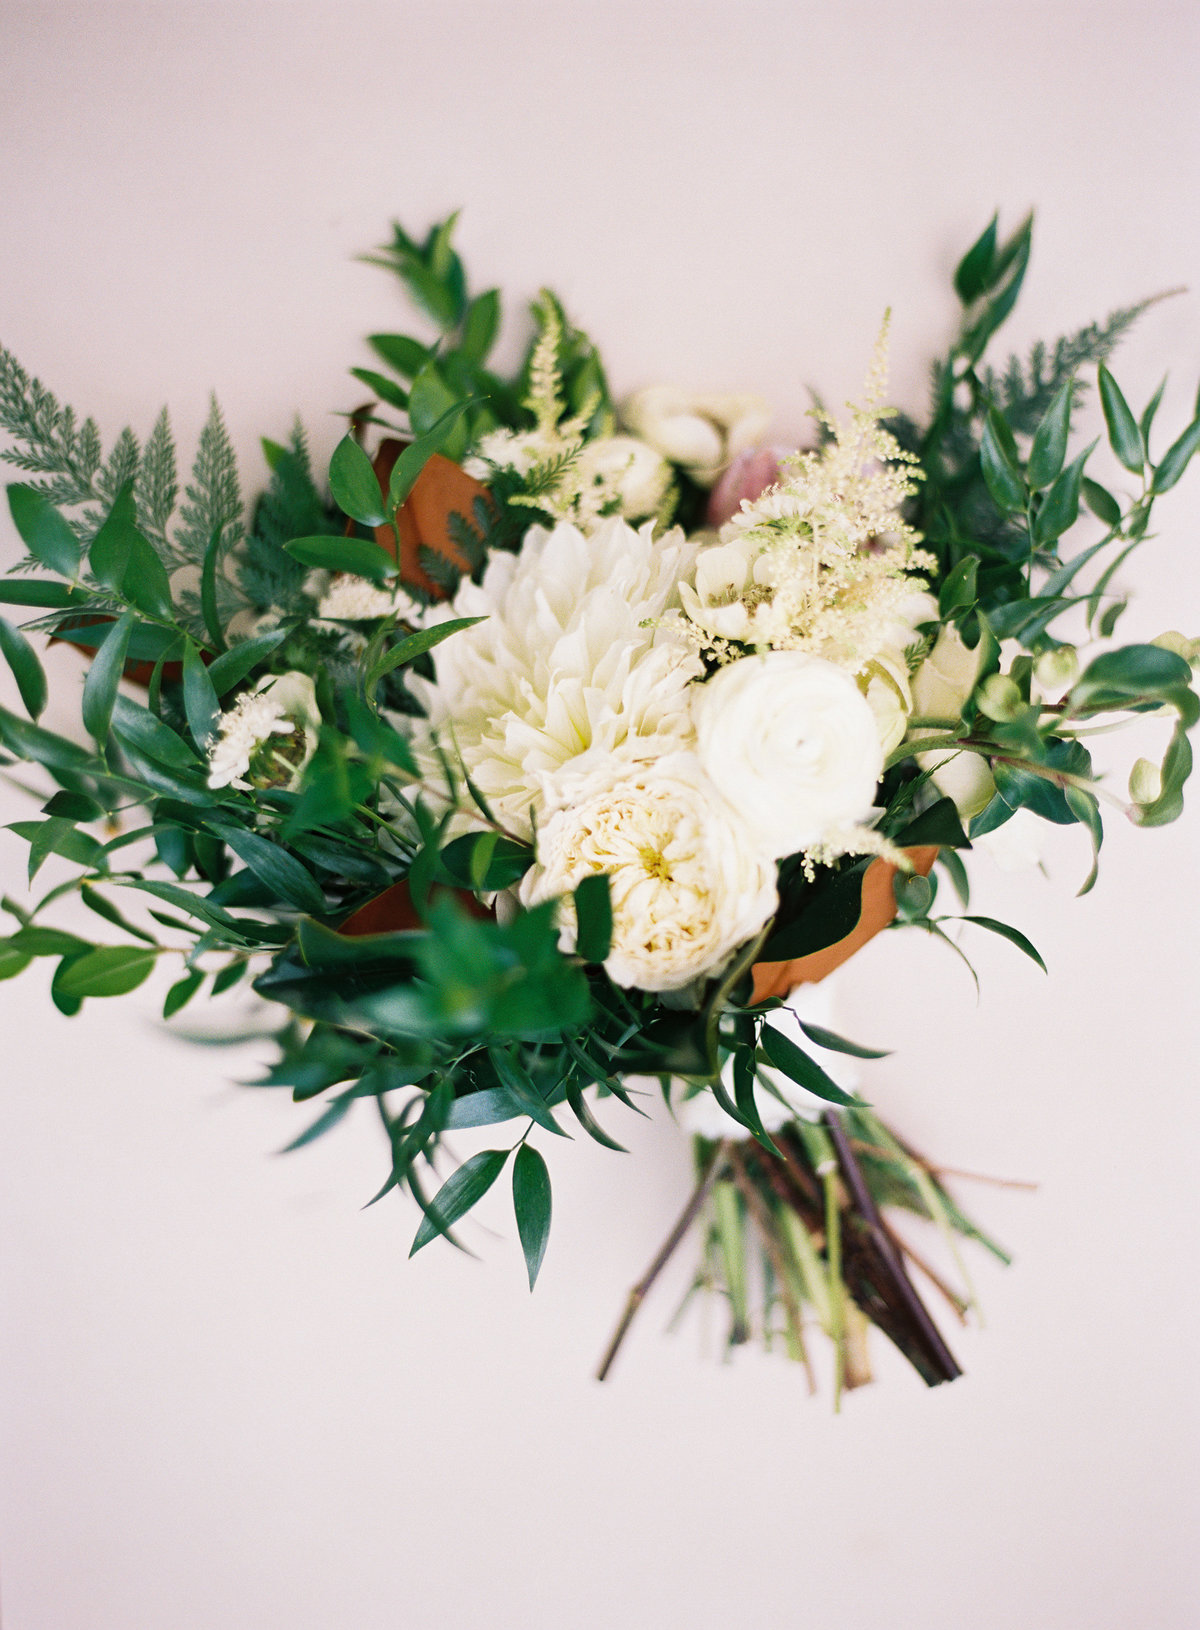 Charlottesville, Virginia wedding planner For Love of Love at Big Spring Farm with Charlottesville Blooms